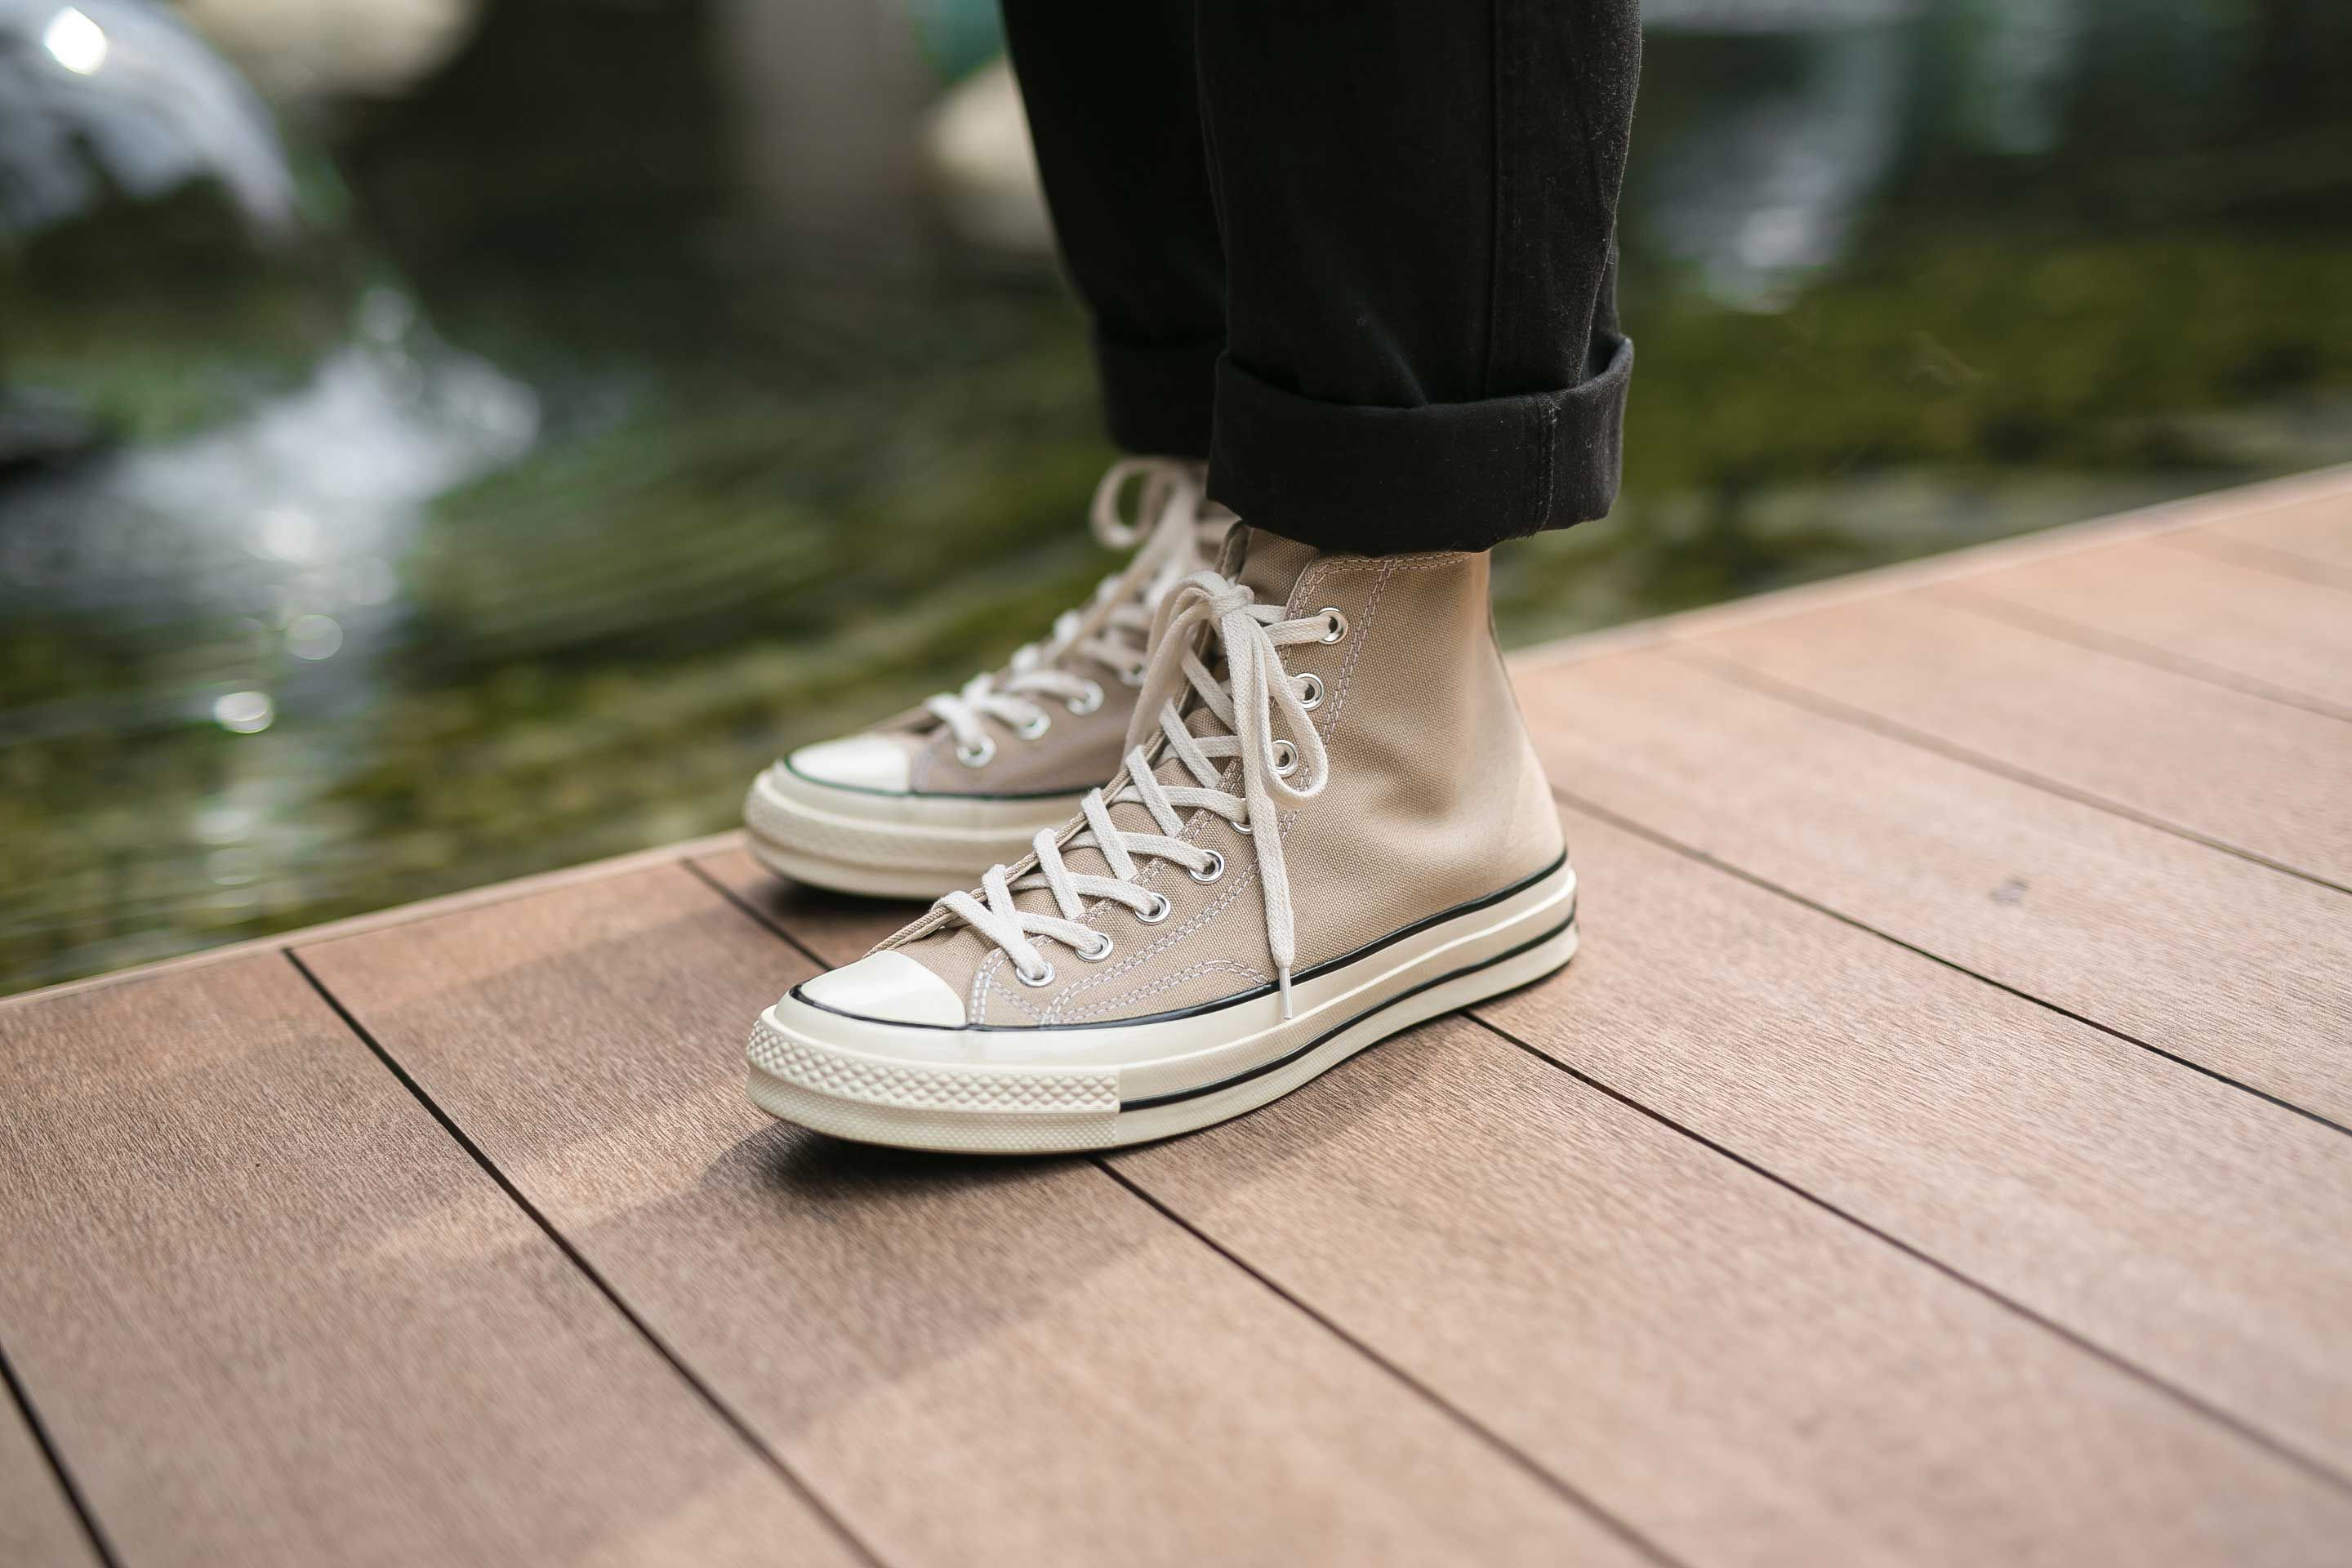 revelación cortar Dólar  High Chuck 70s completely in Vintage Khaki color. - Converse Chuck 70's,  Vintage Khaki. Available in #CROSSOVER Fla… | Sneakers, Exclusive sneakers,  Chucks converse